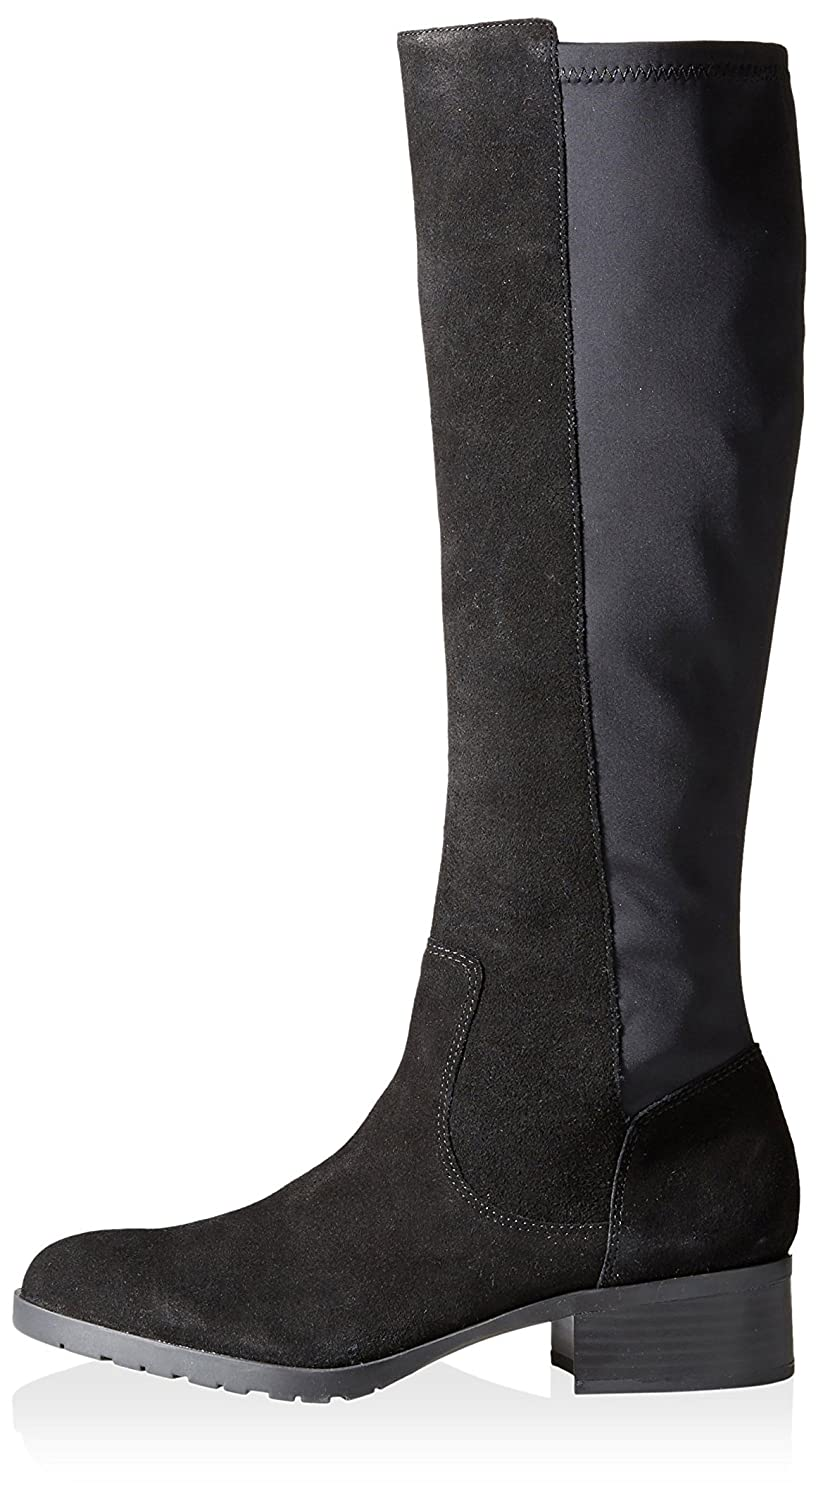 Donald J Pliner Women's 50/50 Tall Boot B01429QXNW 6 B(M) US|Black